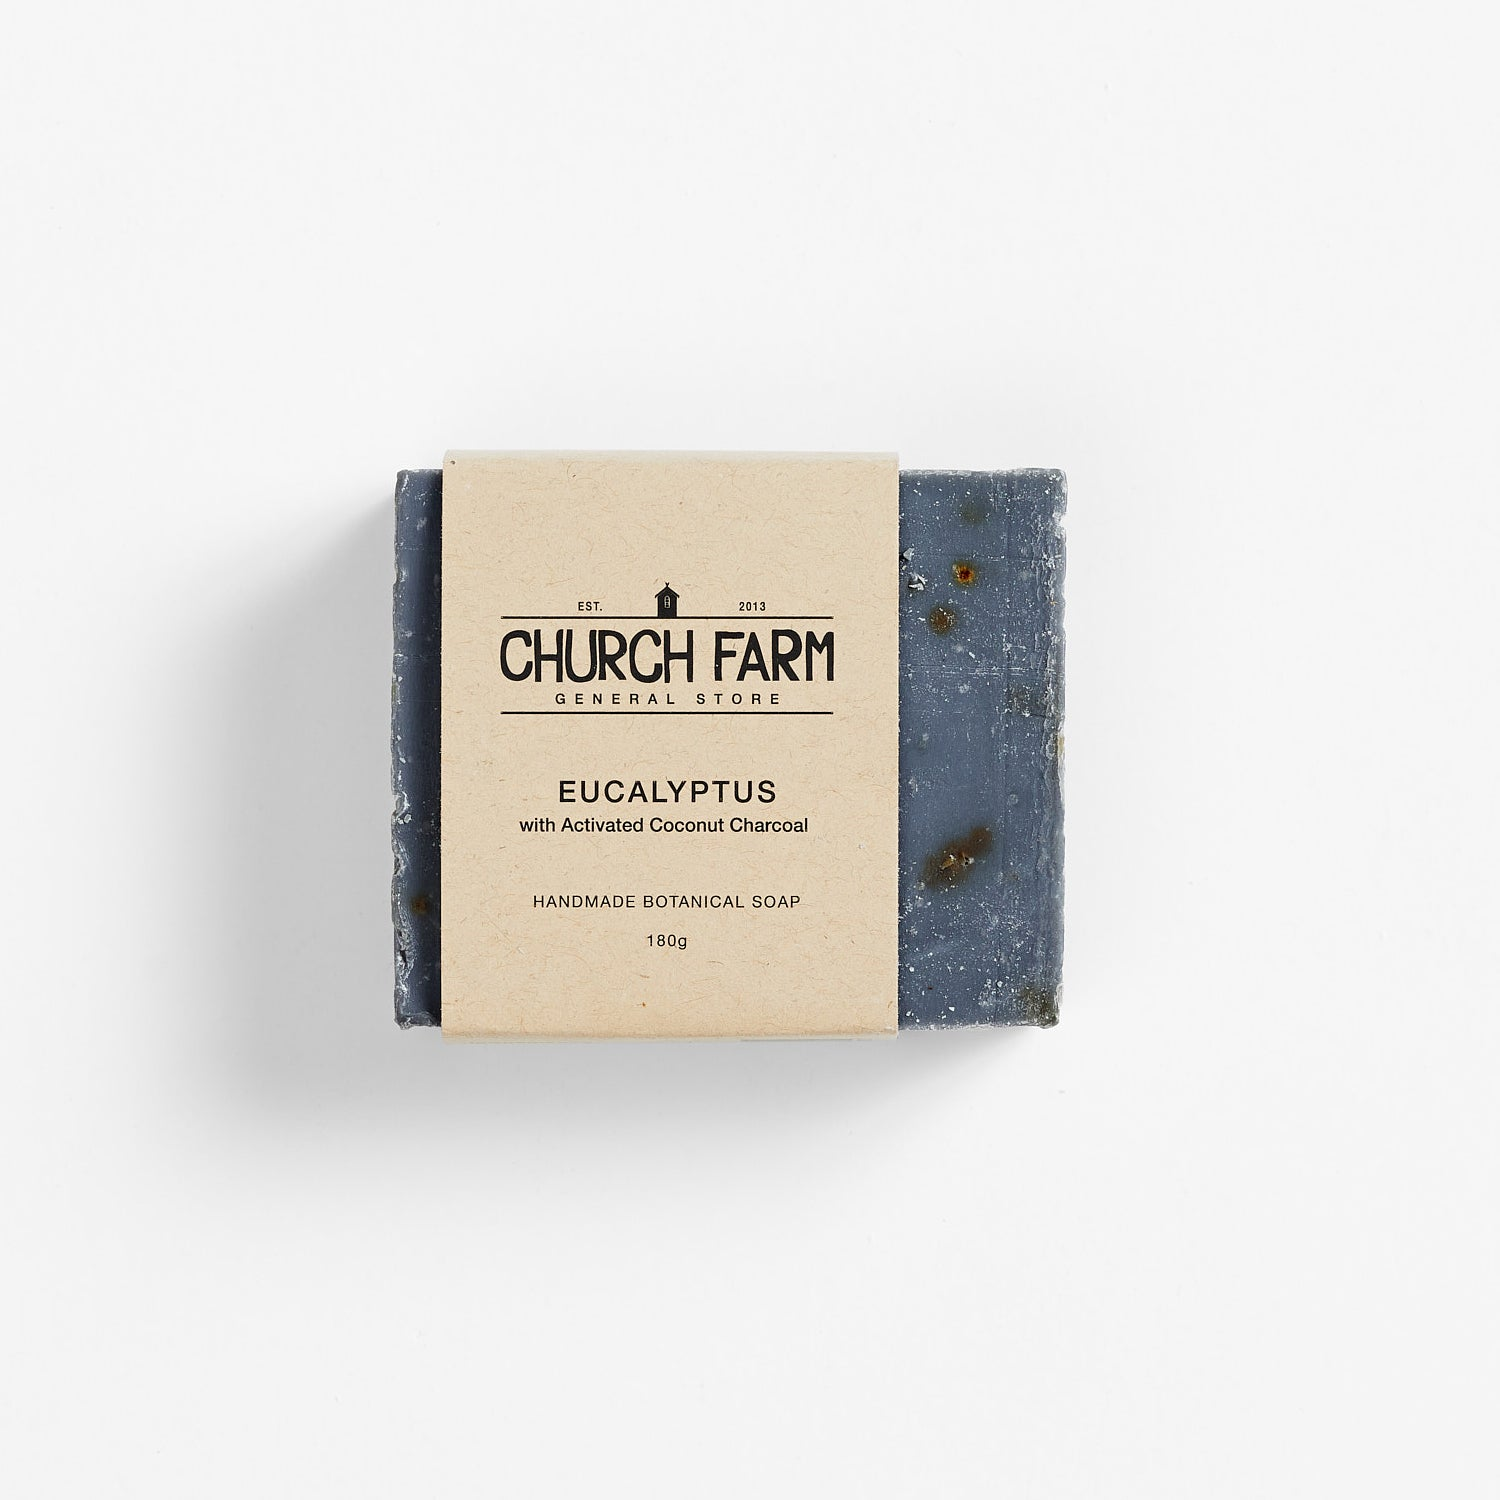 Church Farm Botanical Soap - Eucalyptus & Activated Coconut Charcoal